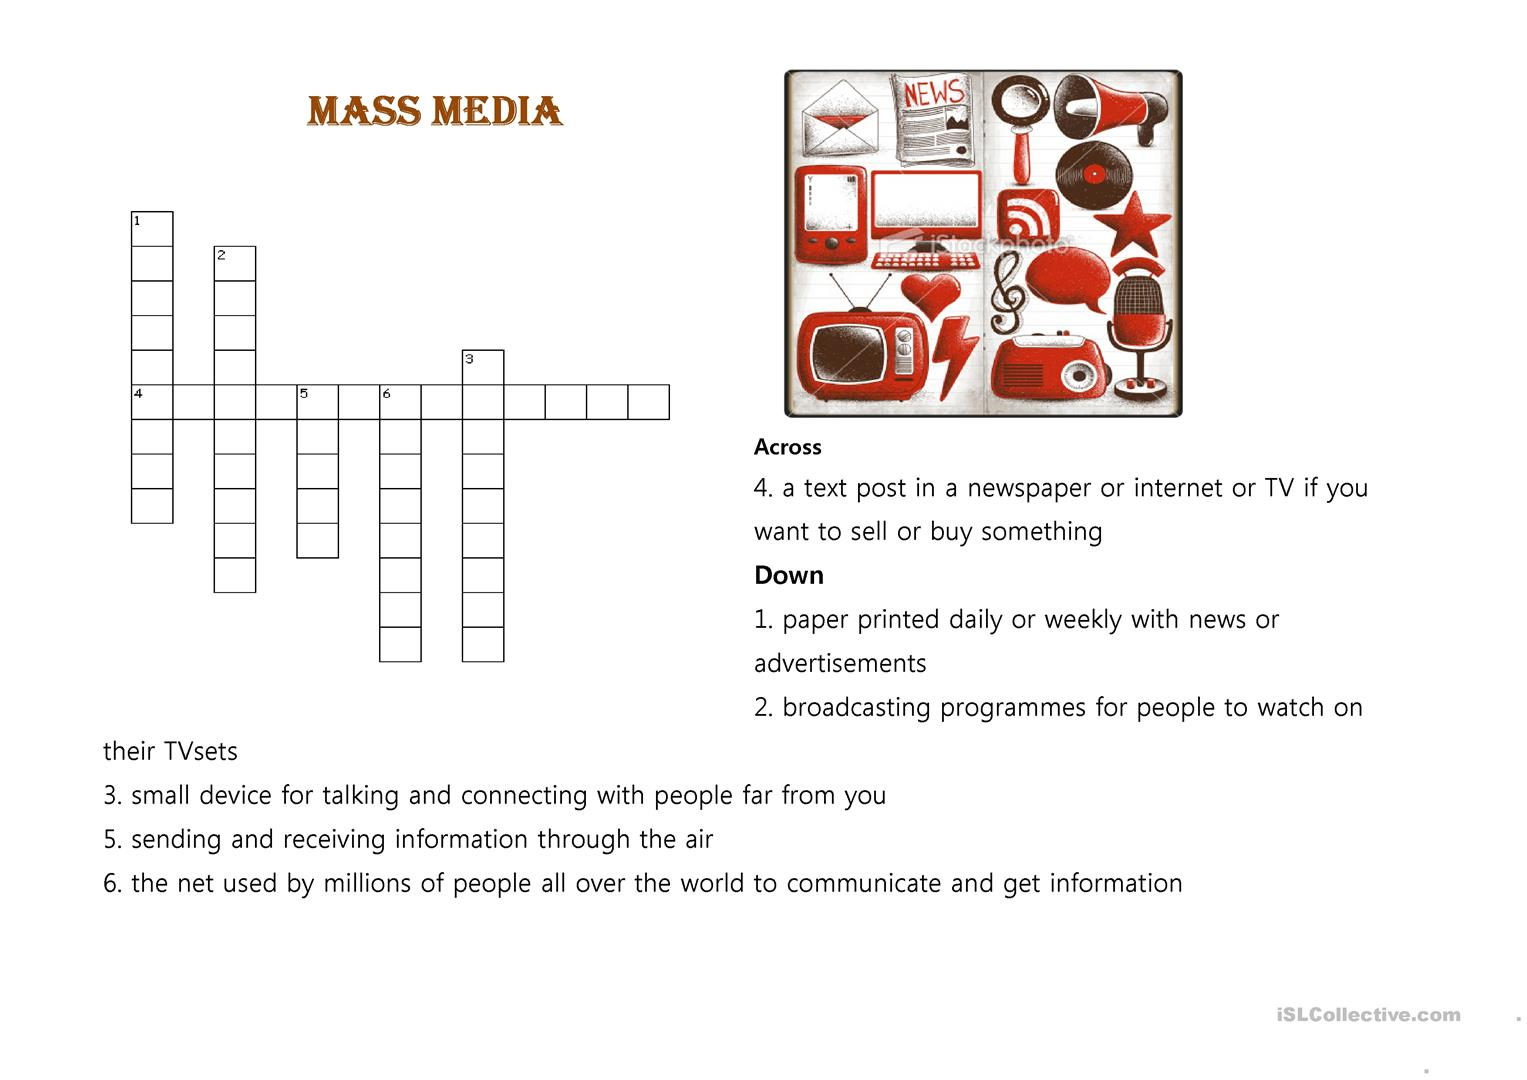 effect of mass media worksheet The influence of the mass media a new york times learning network lesson plan unit considering the effects of electronic media on infants and toddlers in this lesson, students discuss the influx of media products geared toward infants and young children.